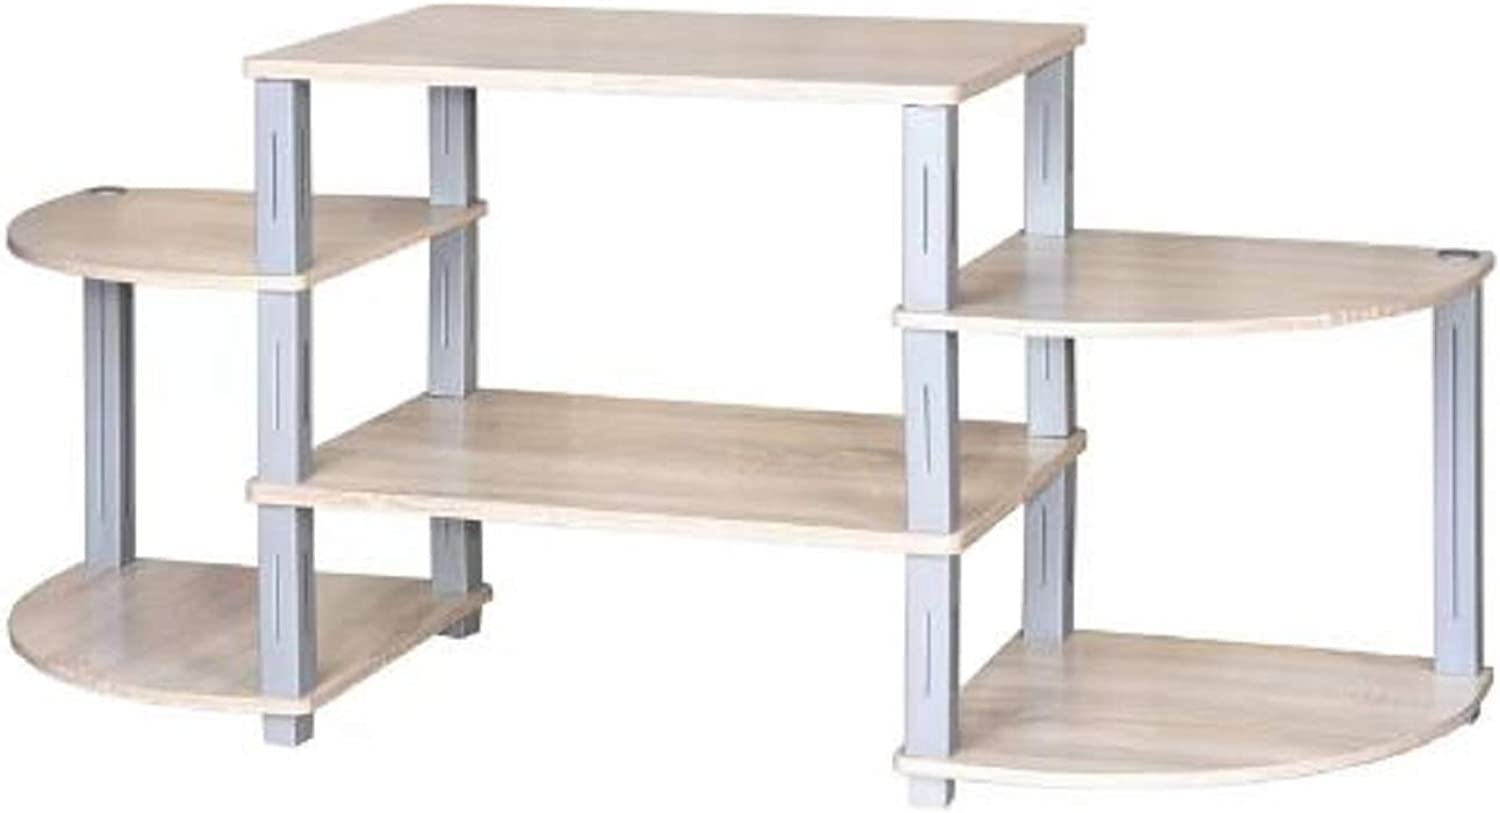 Tv Entertainment Center Centre, Avendano Tv Entertainment Center Centre for TVs Up to 24  Ideal for Small Space Living, This Compact Stand Meets Your Media Storage Needs